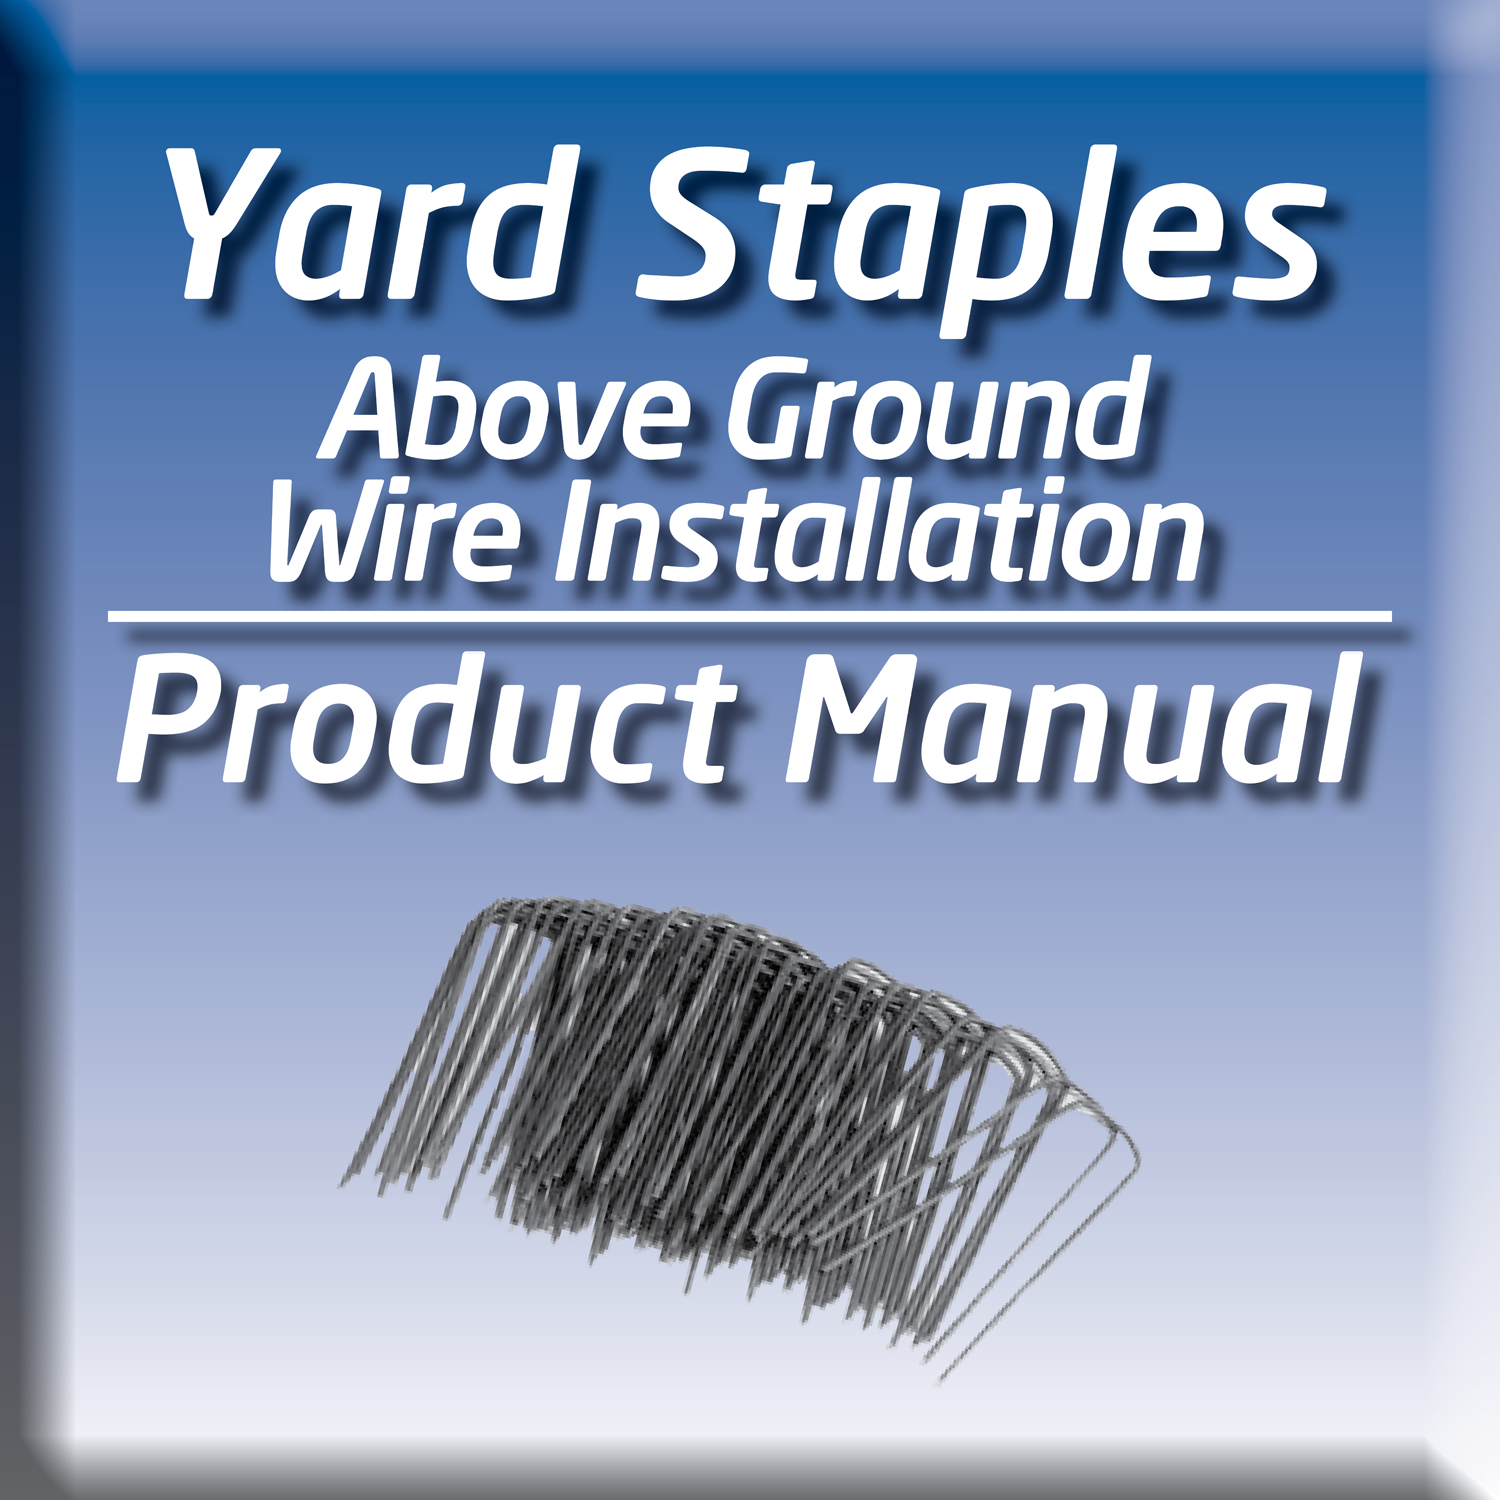 YS-50 YARD STAPLES FOR ABOVE GROUND ELECTRIC FENCE WIRE INSTALLATION